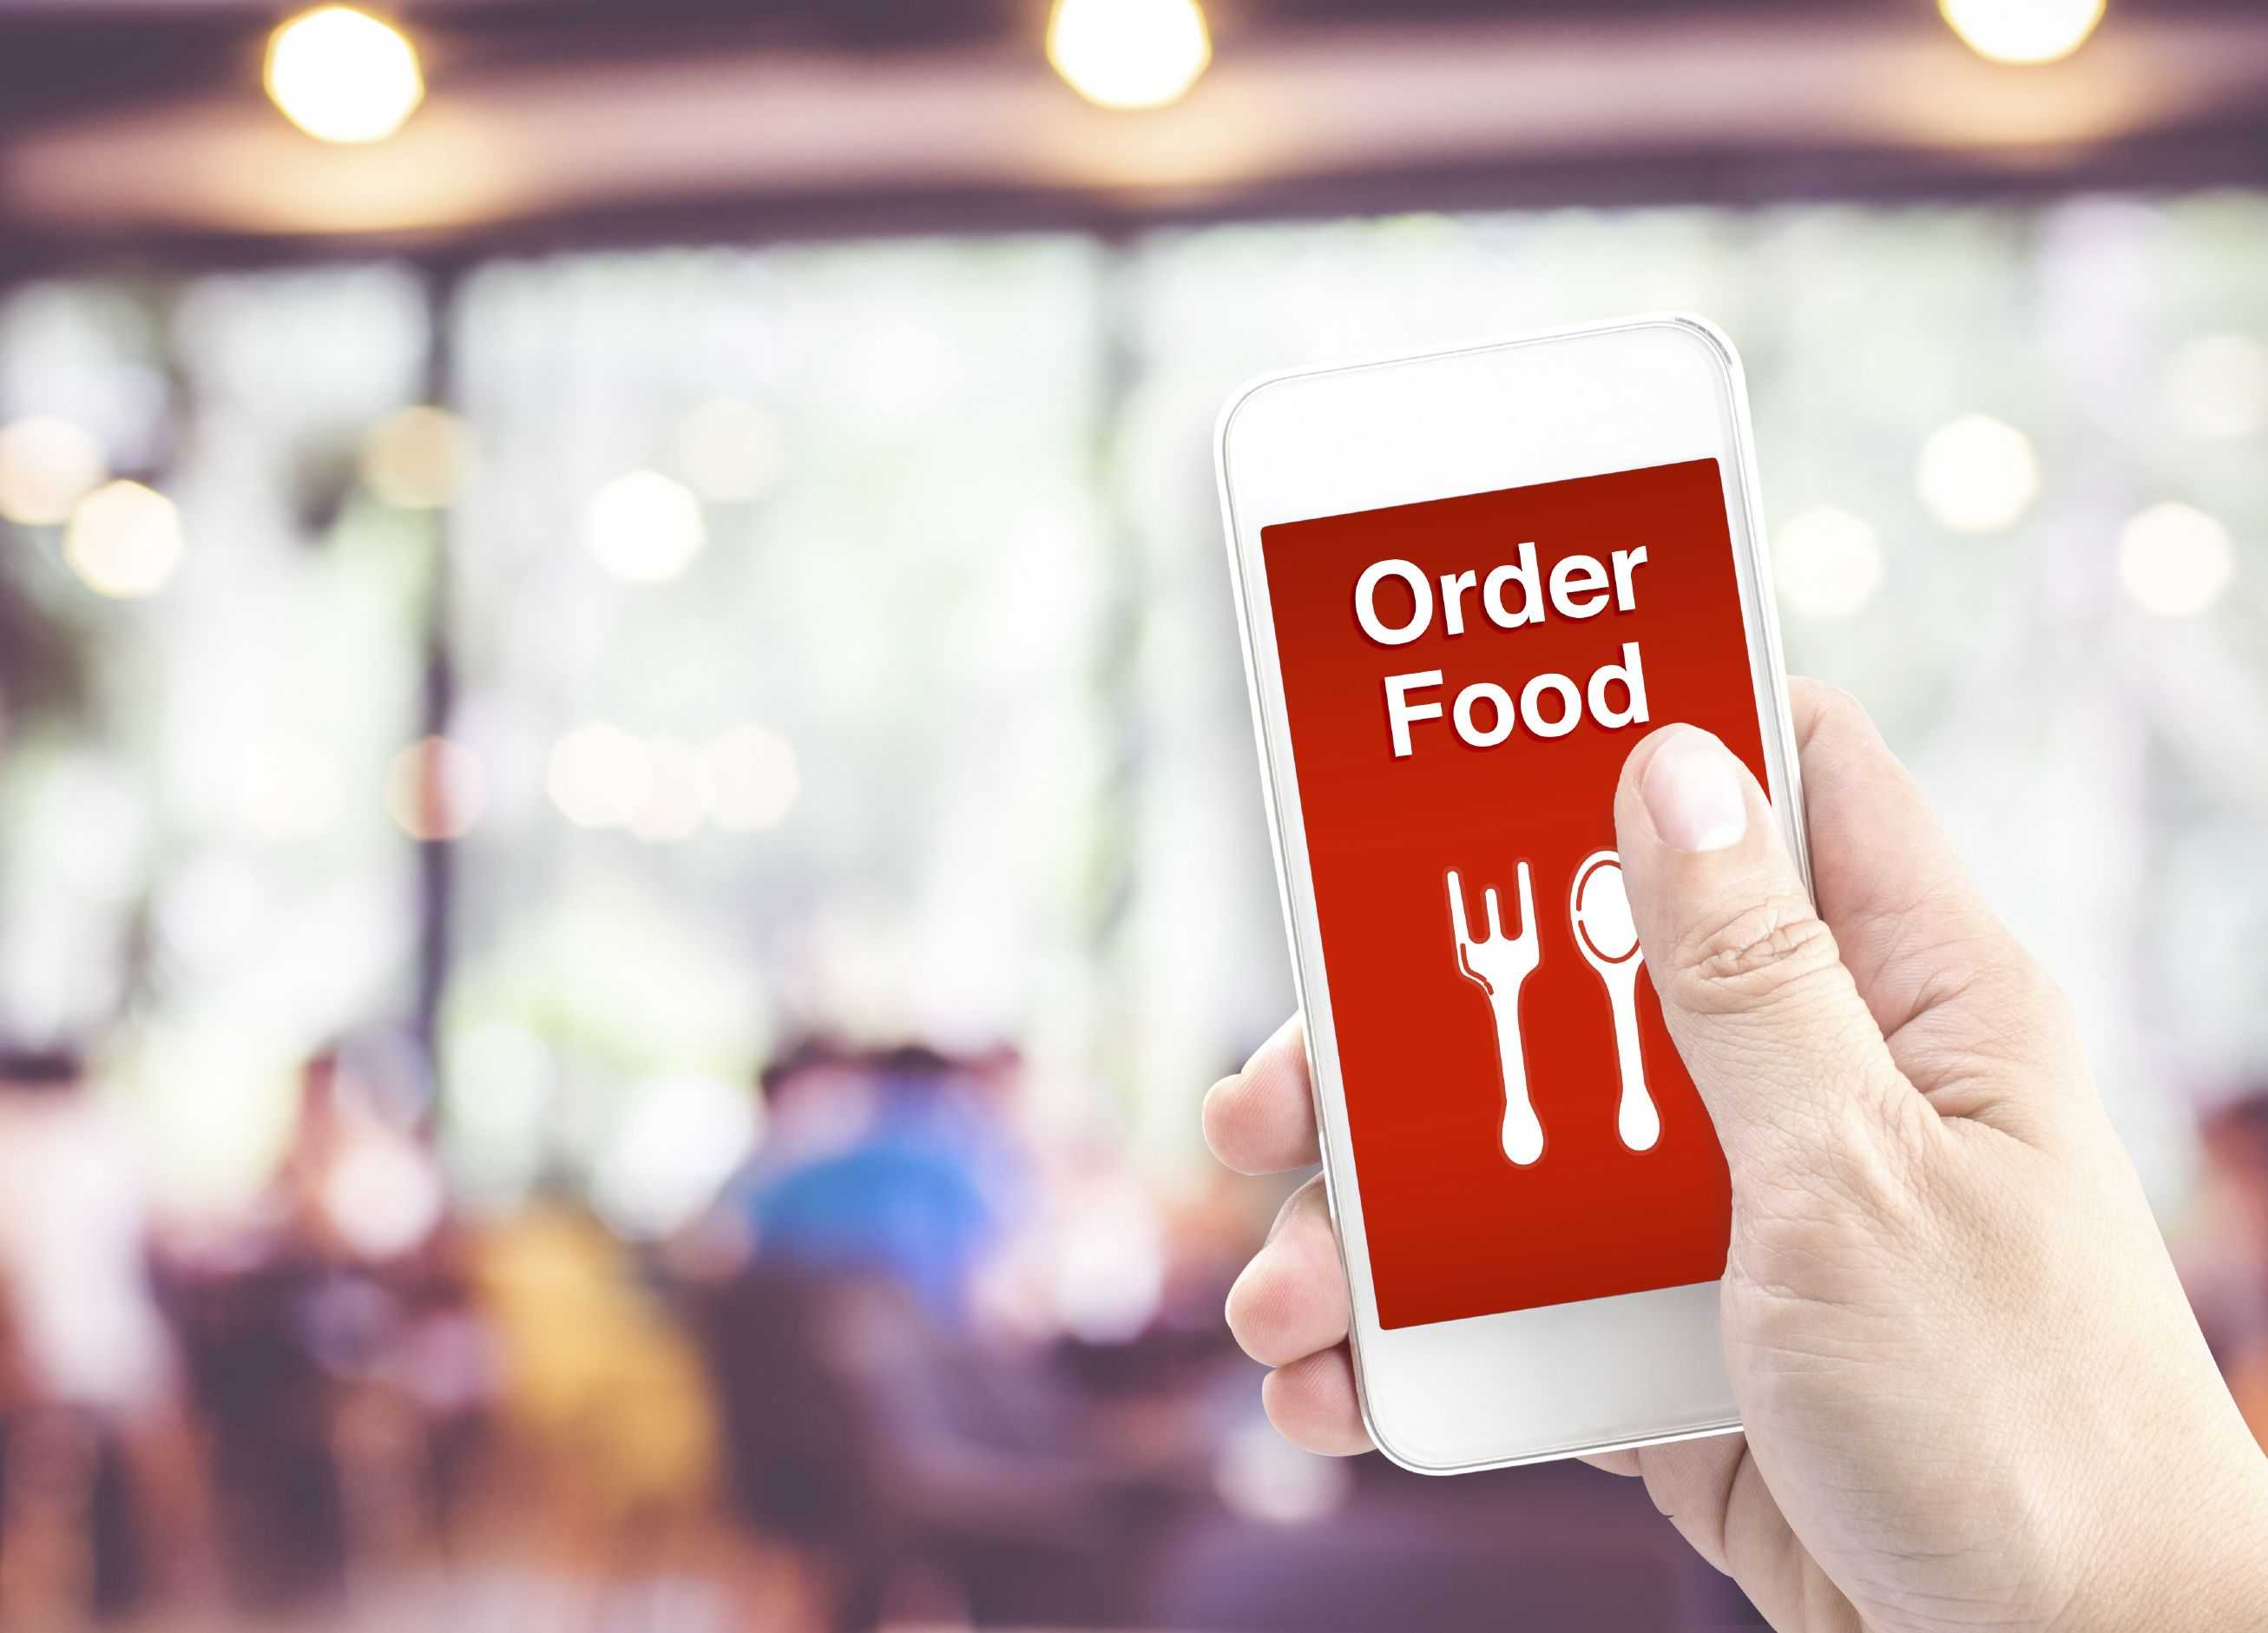 future-of-online-food-ordering-by-restaurant-app-restroapp-compressed